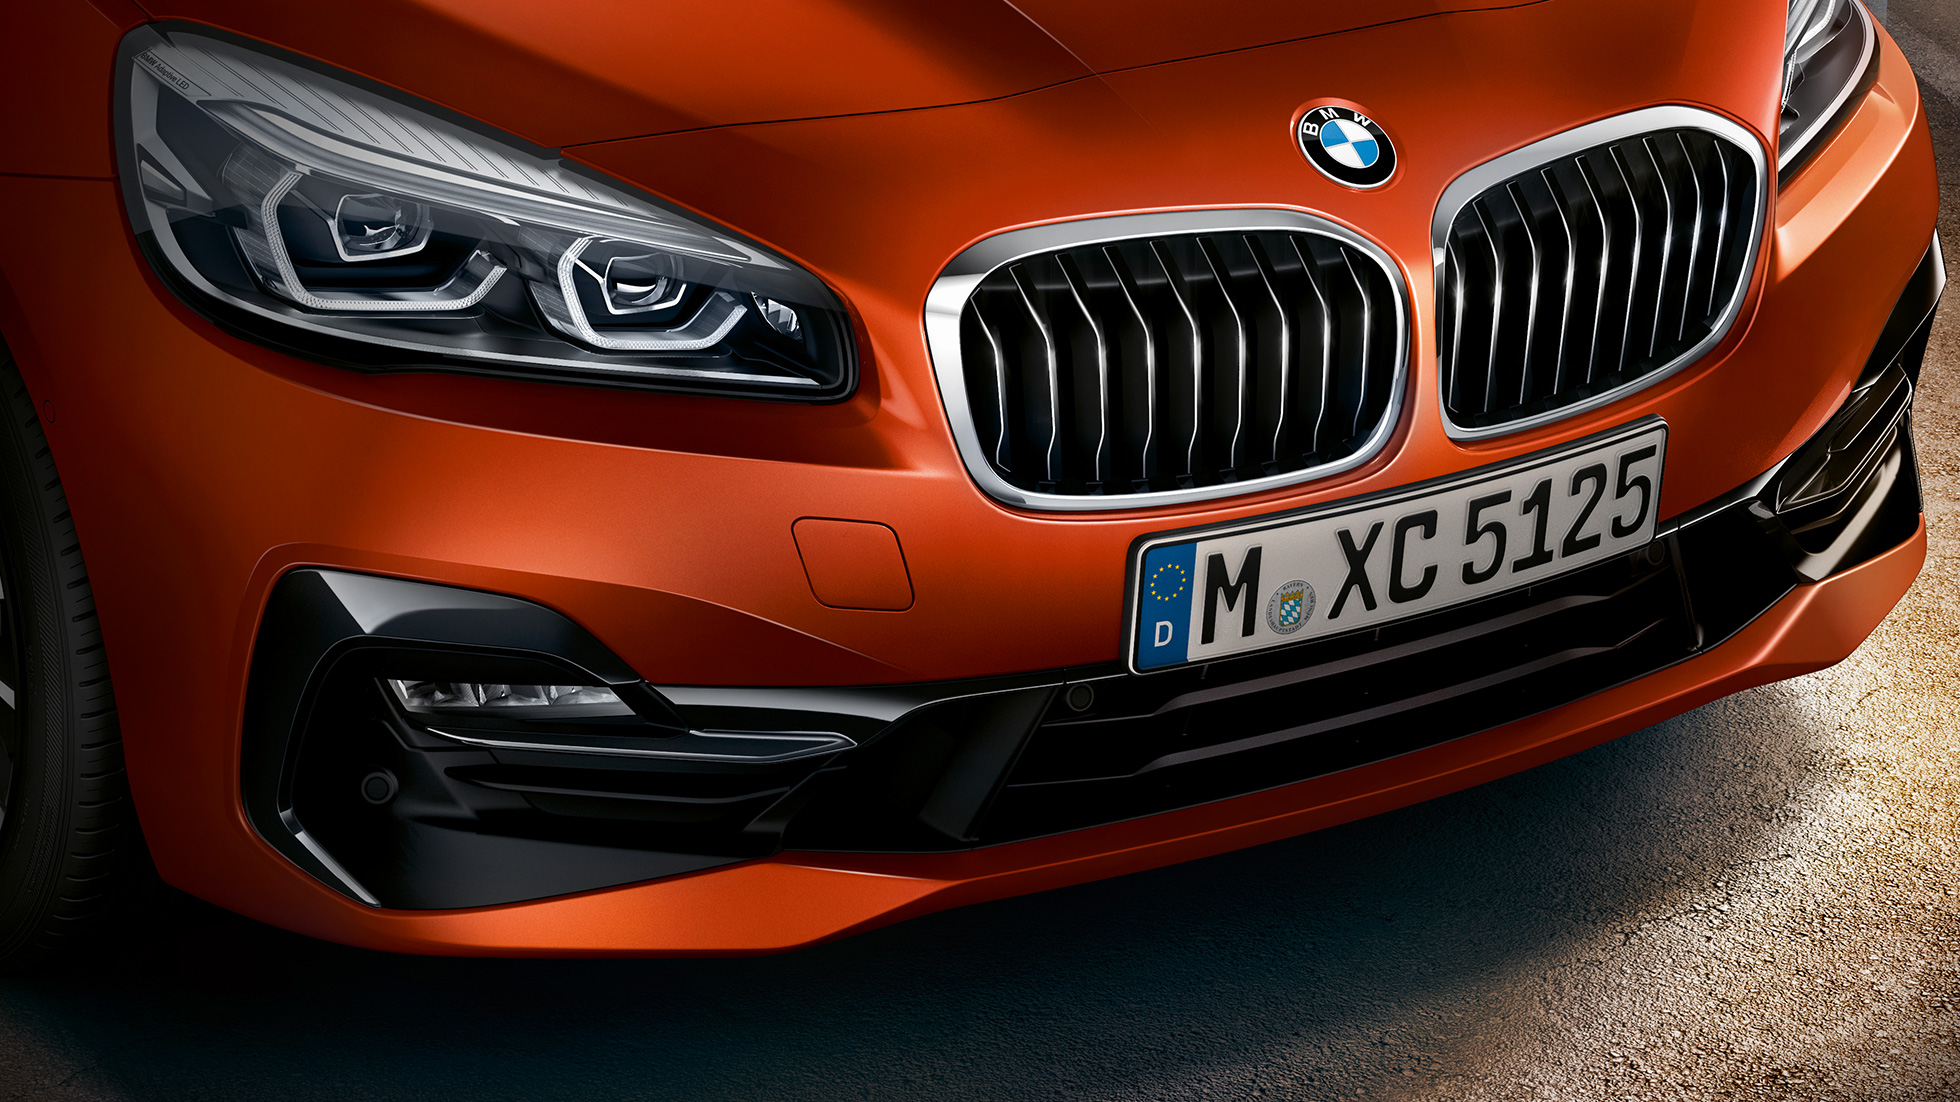 Dubbelnjure BMW 2-serie Active Tourer F45 2018 Sunset Orange metallic närbild front